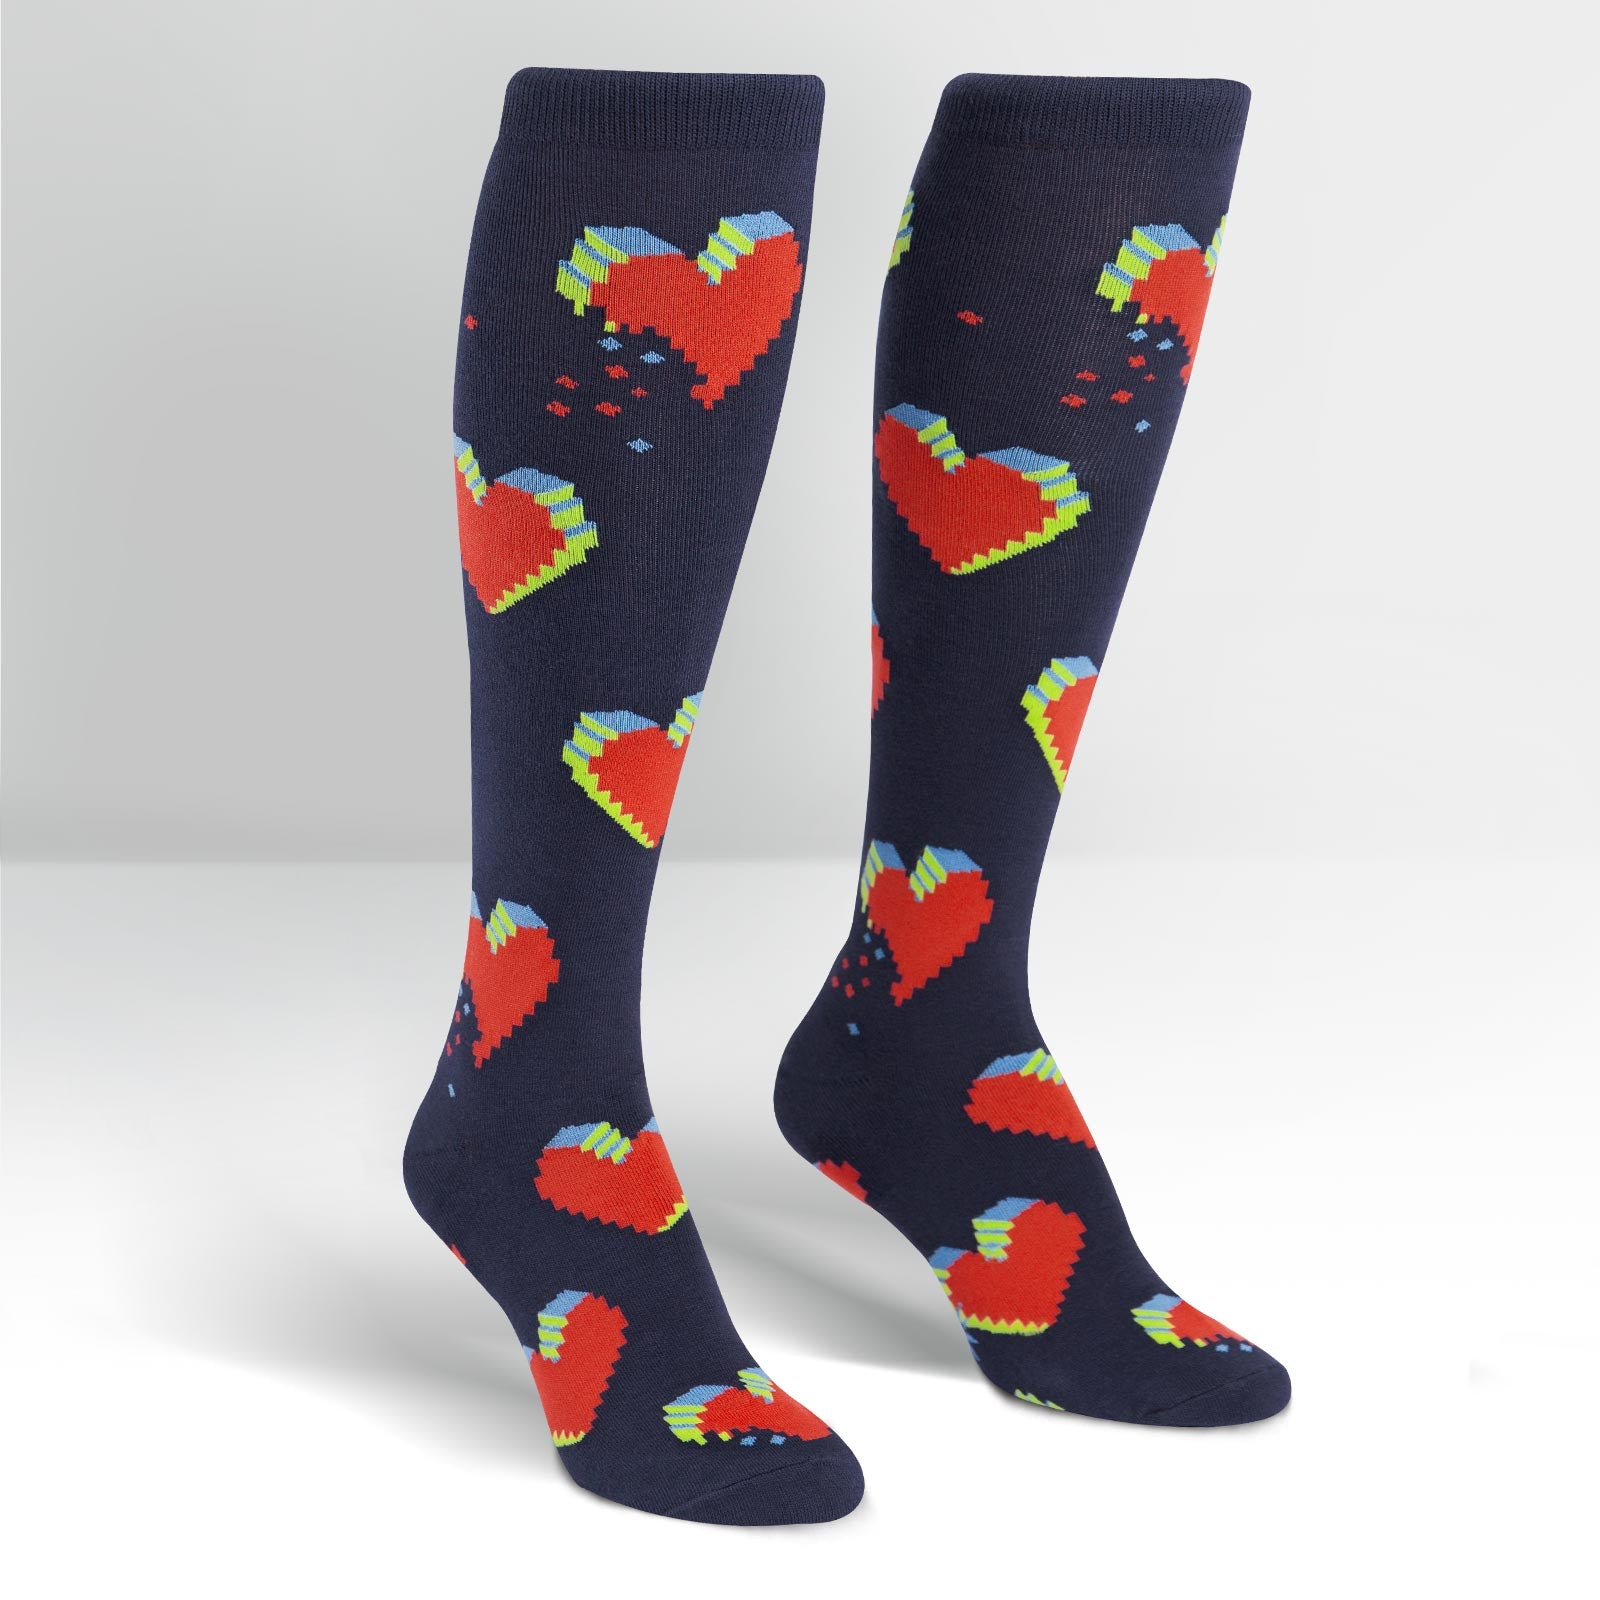 Pixelated Heart Knee High Socks